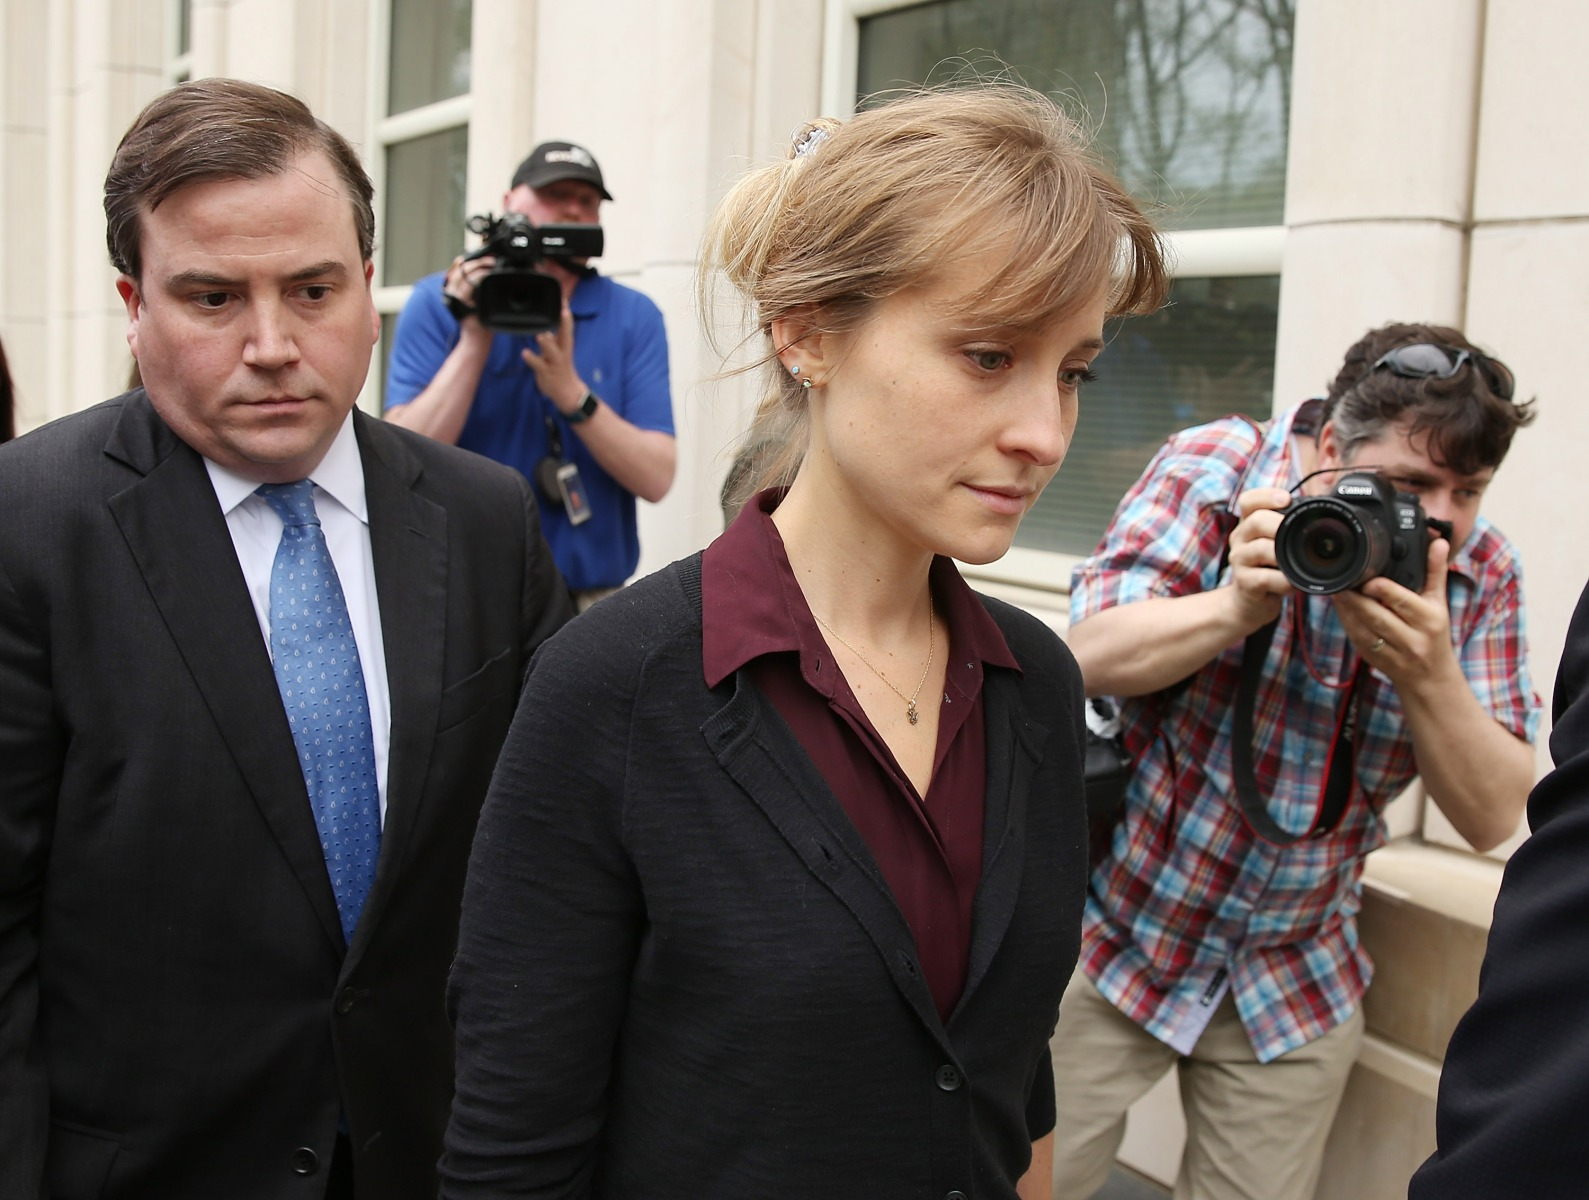 Actress Says She Was Lured Into Nxivm Sex Cult By Tv Star Allison Mack - Insidehook-6160